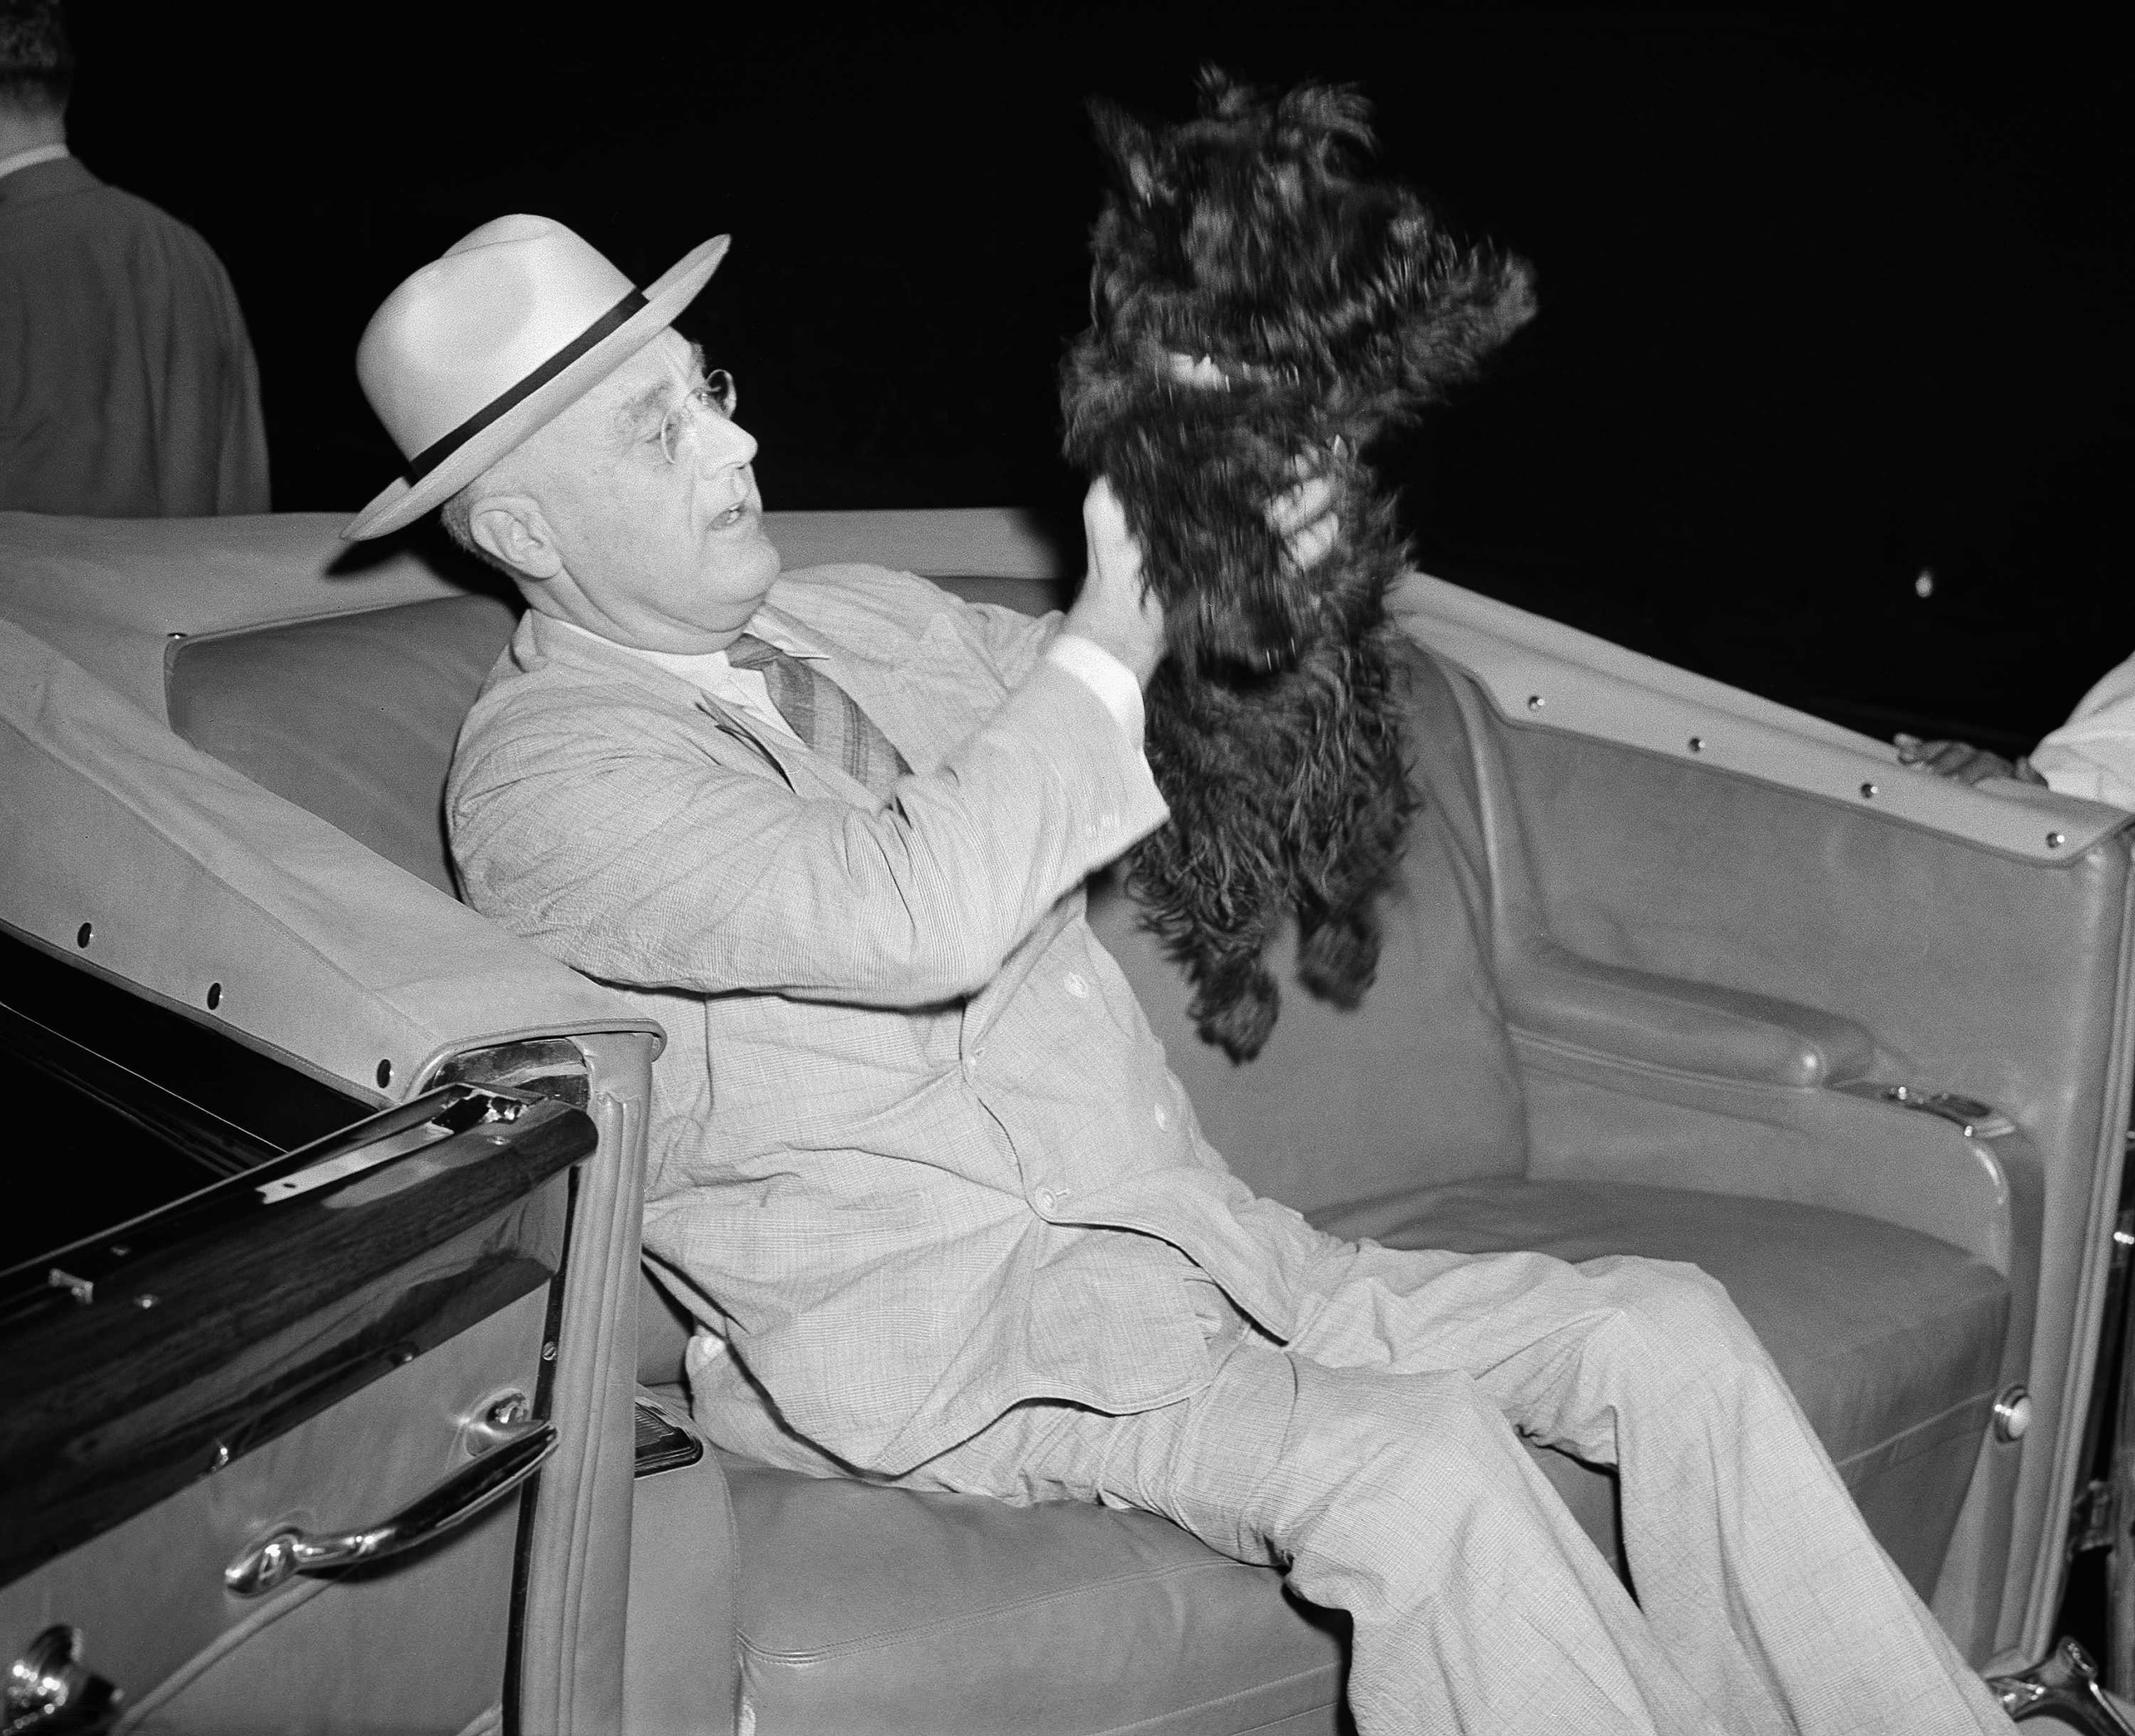 Franklin D. Roosevelt lifts his dog, Fala, as he prepares to motor from his special train to the Yacht Potomac in New London, Connecticut, Aug. 3, 1941.